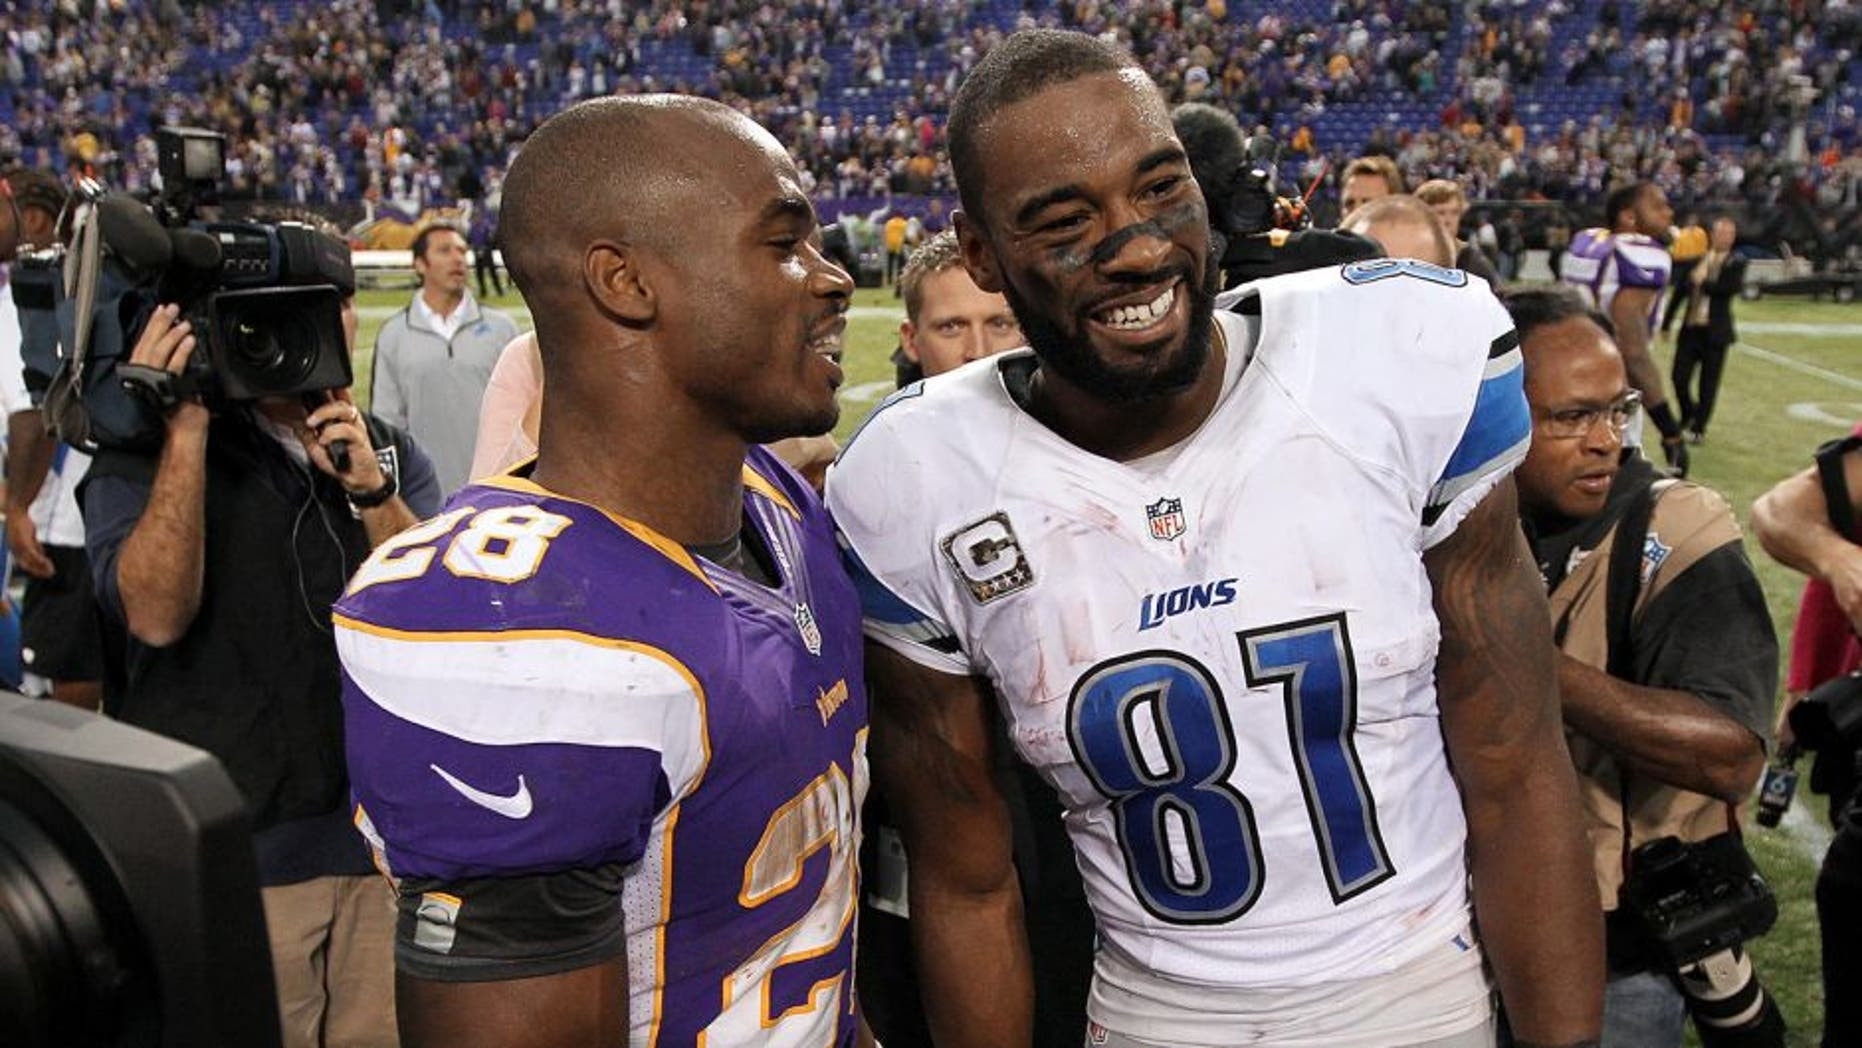 Nov 11, 2012; Minneapolis, MN, USA; Detroit Lions wide receiver Calvin Johnson (81) talks with Minnesota Vikings running back Adrian Peterson (28) following the game at the Metrodome. The Vikings defeated the Lions 34-24. Mandatory Credit: Brace Hemmelgarn-USA TODAY Sports